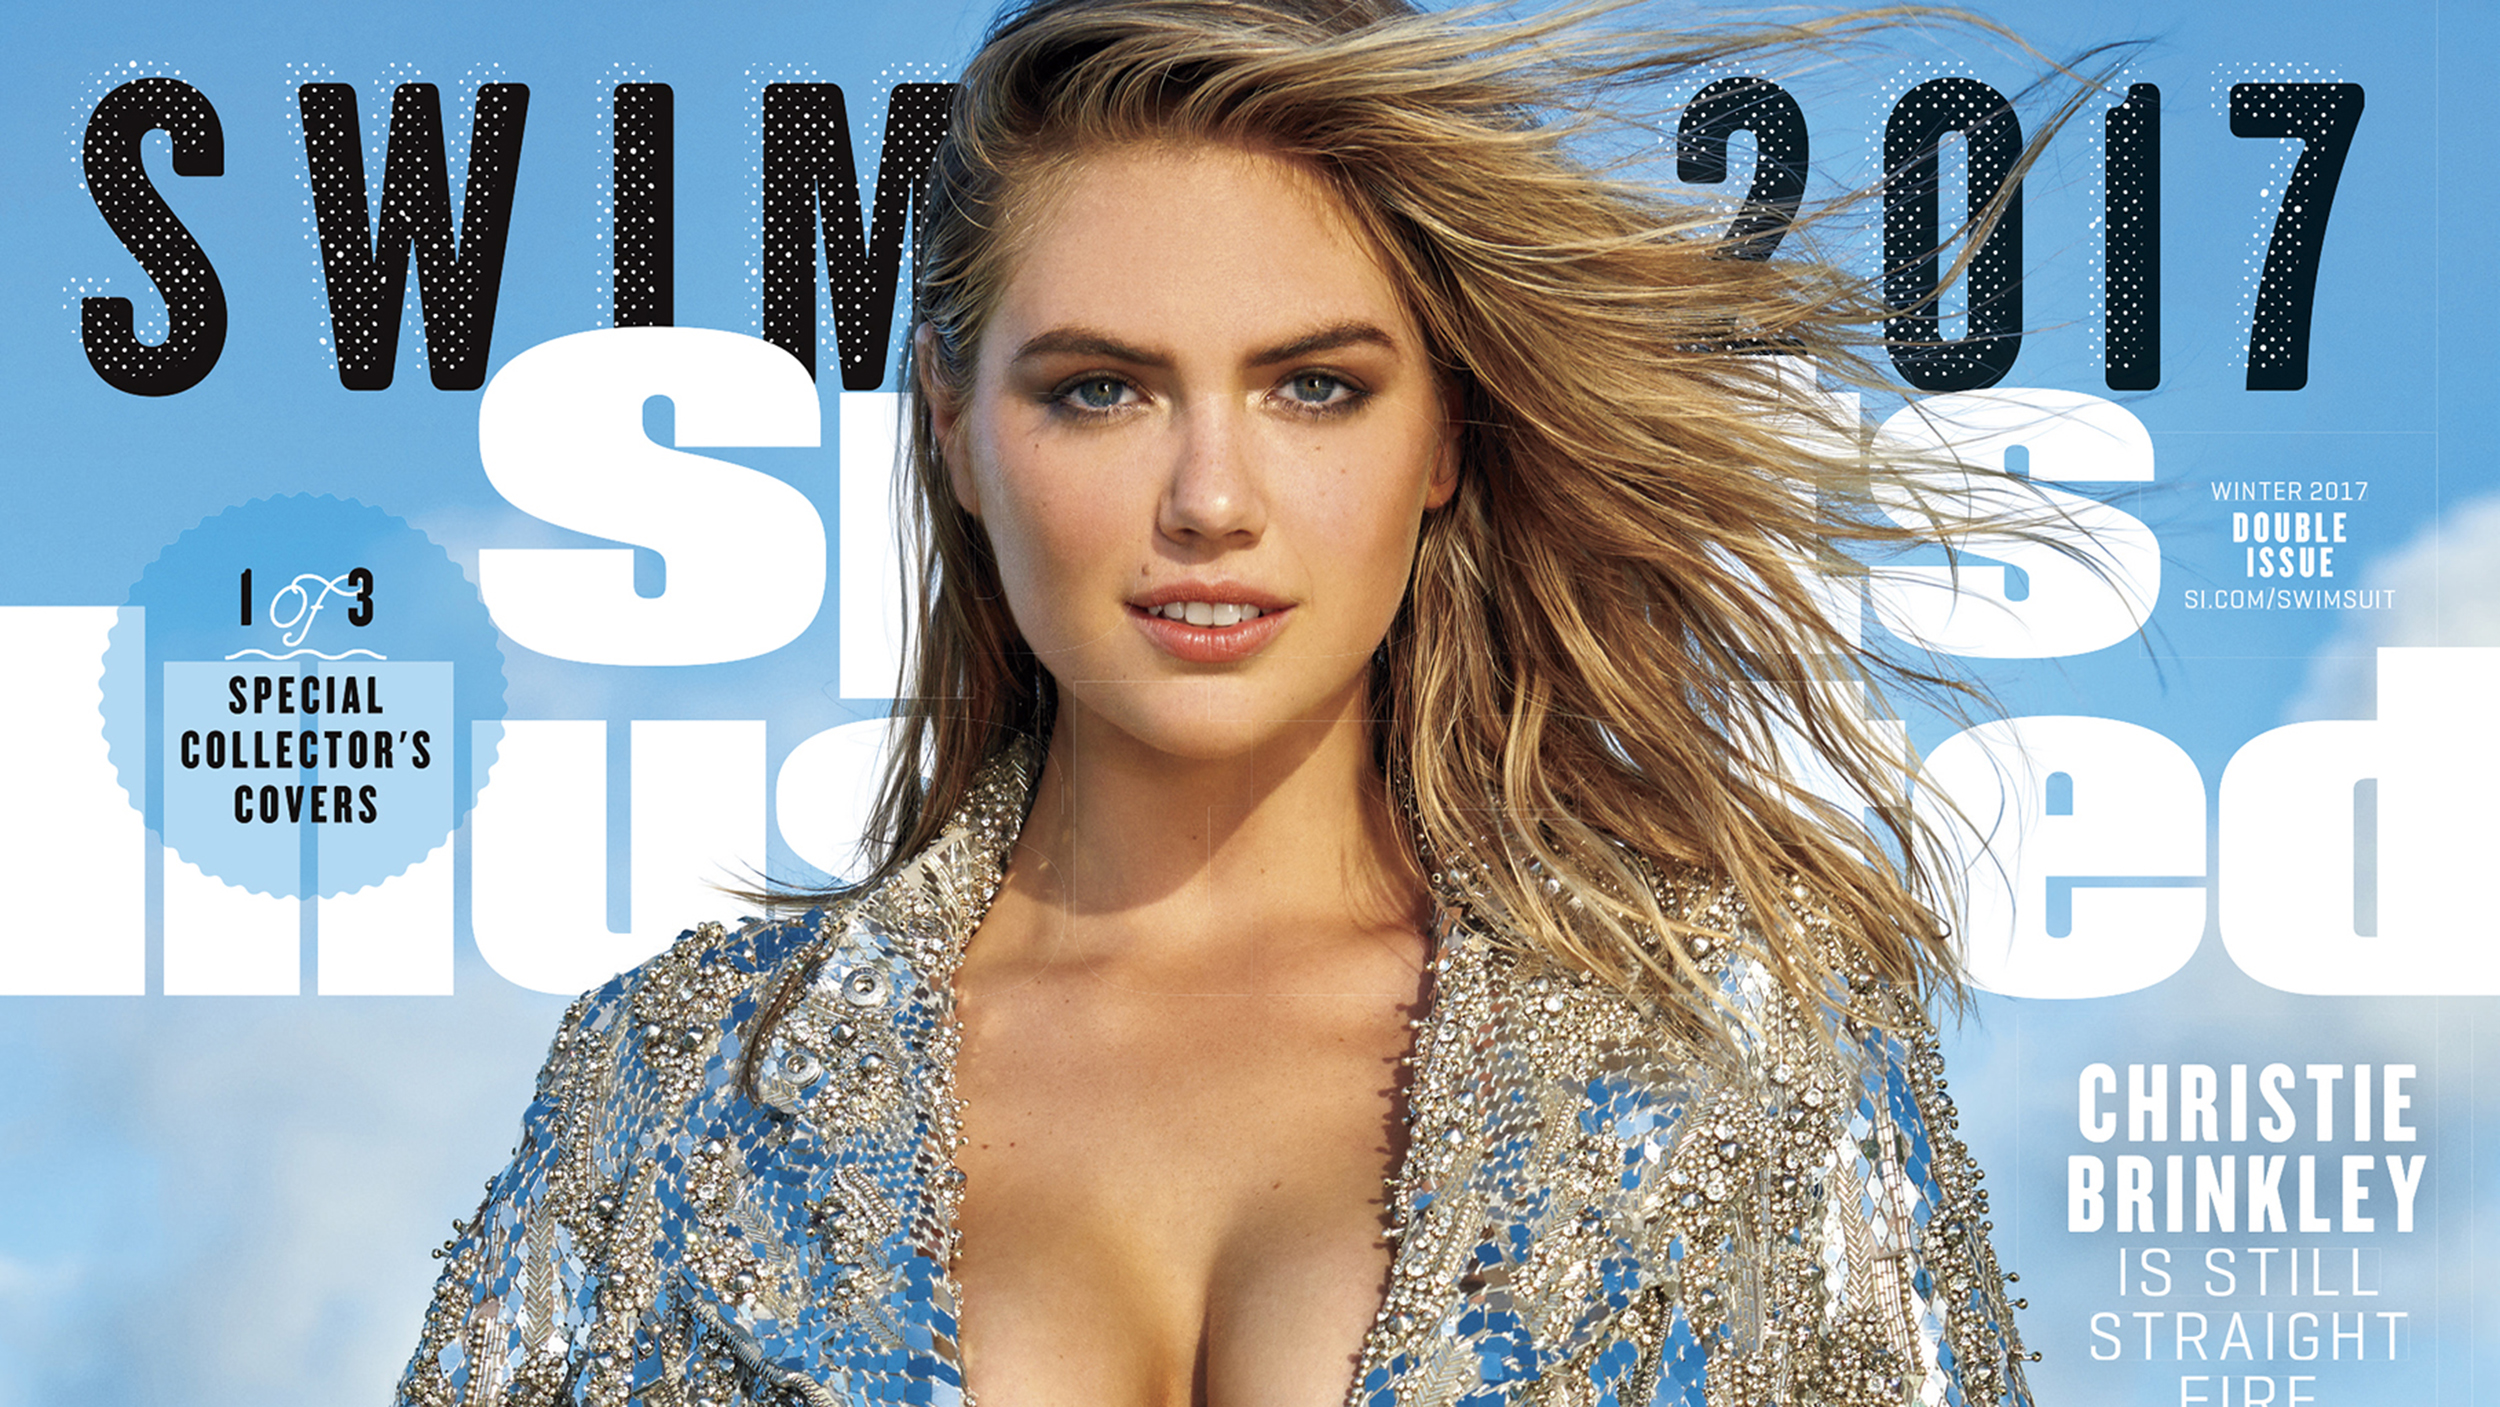 Kate Upton on cover of 2017 Sports Illustrated swimsuit ...